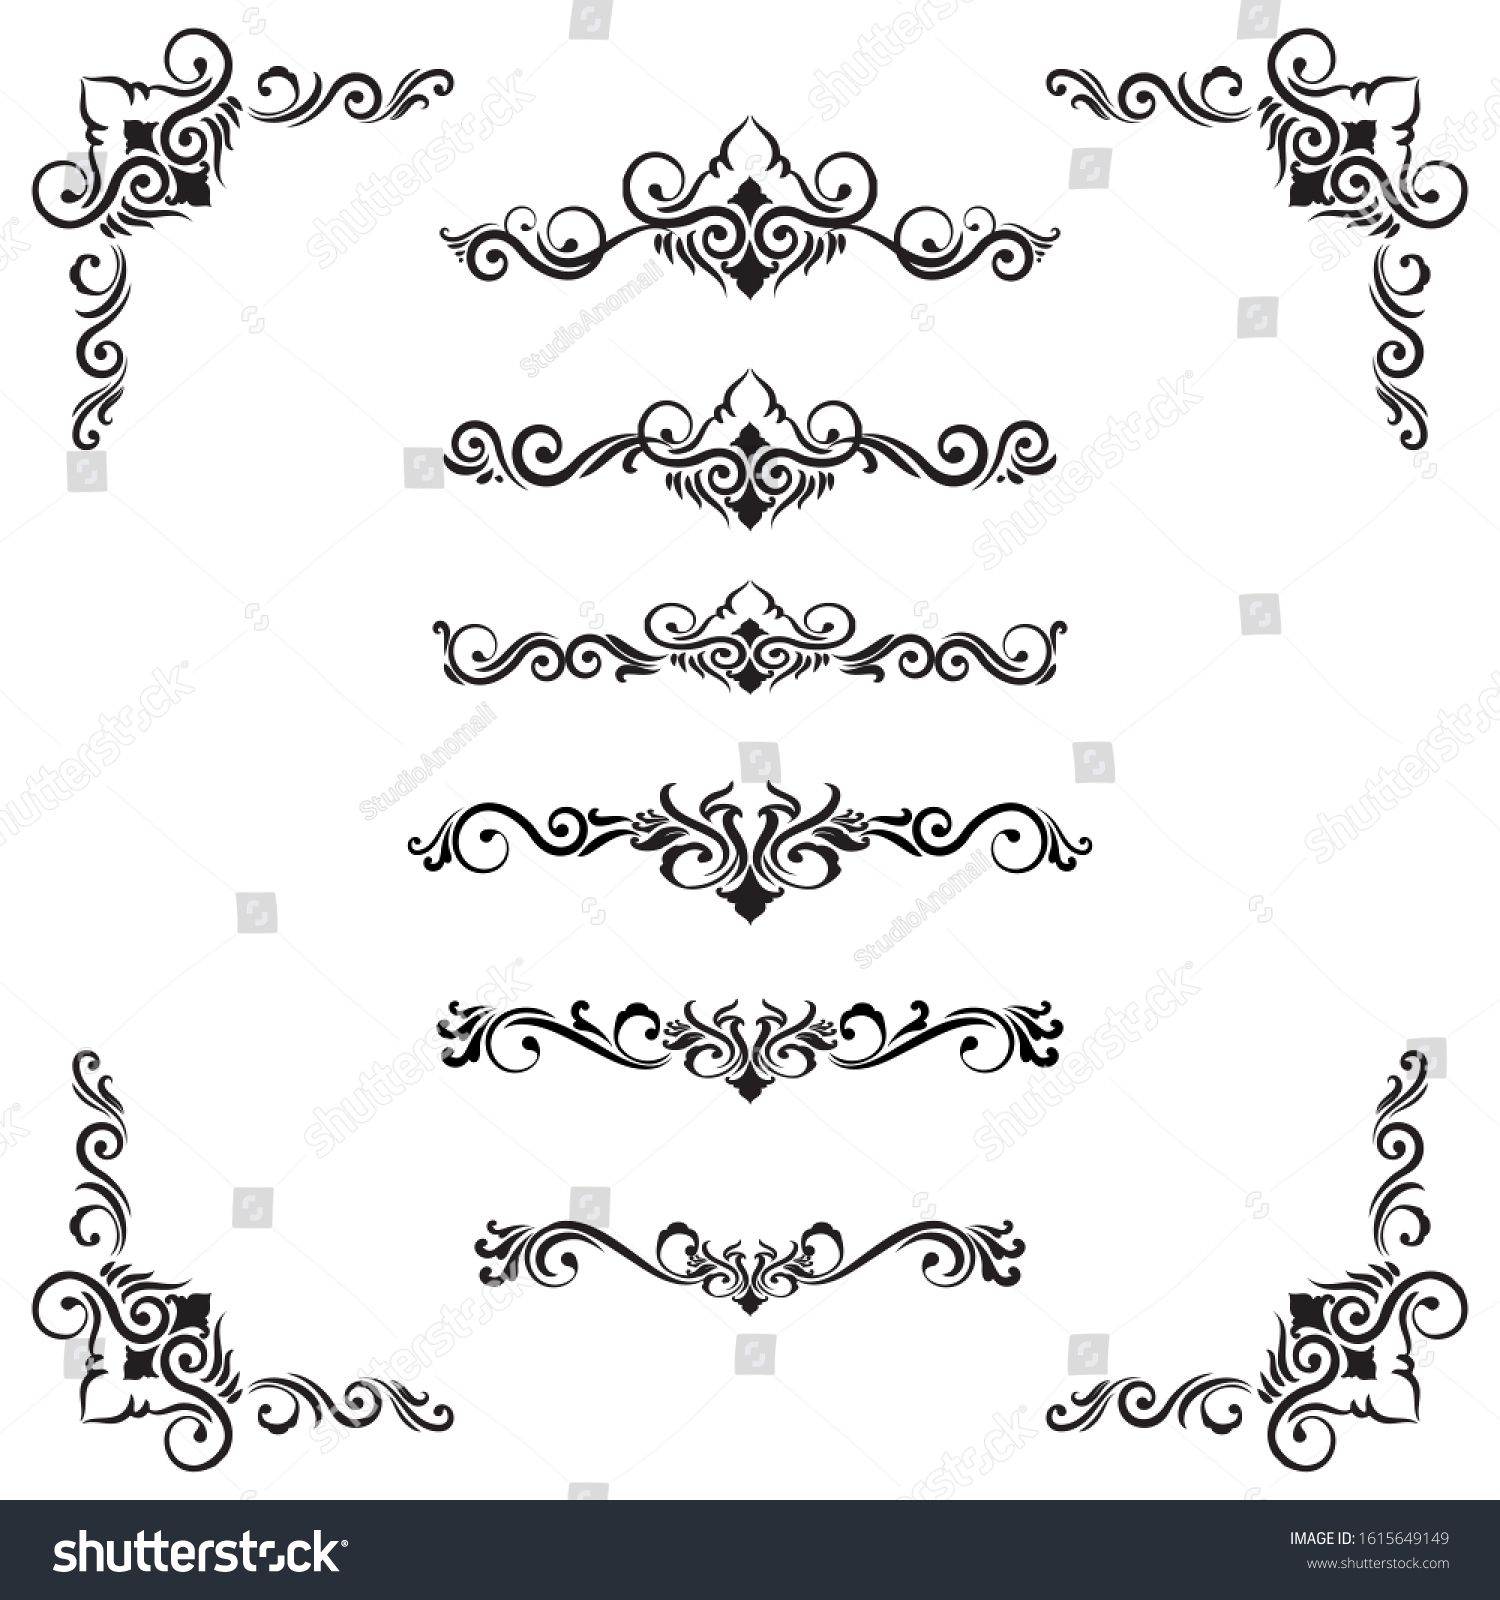 Classic Ornament Frame Vintage Border Stock Vector Royalty Free 1615649149 In 2020 Ornament Frame Vintage Borders Chinese Patterns